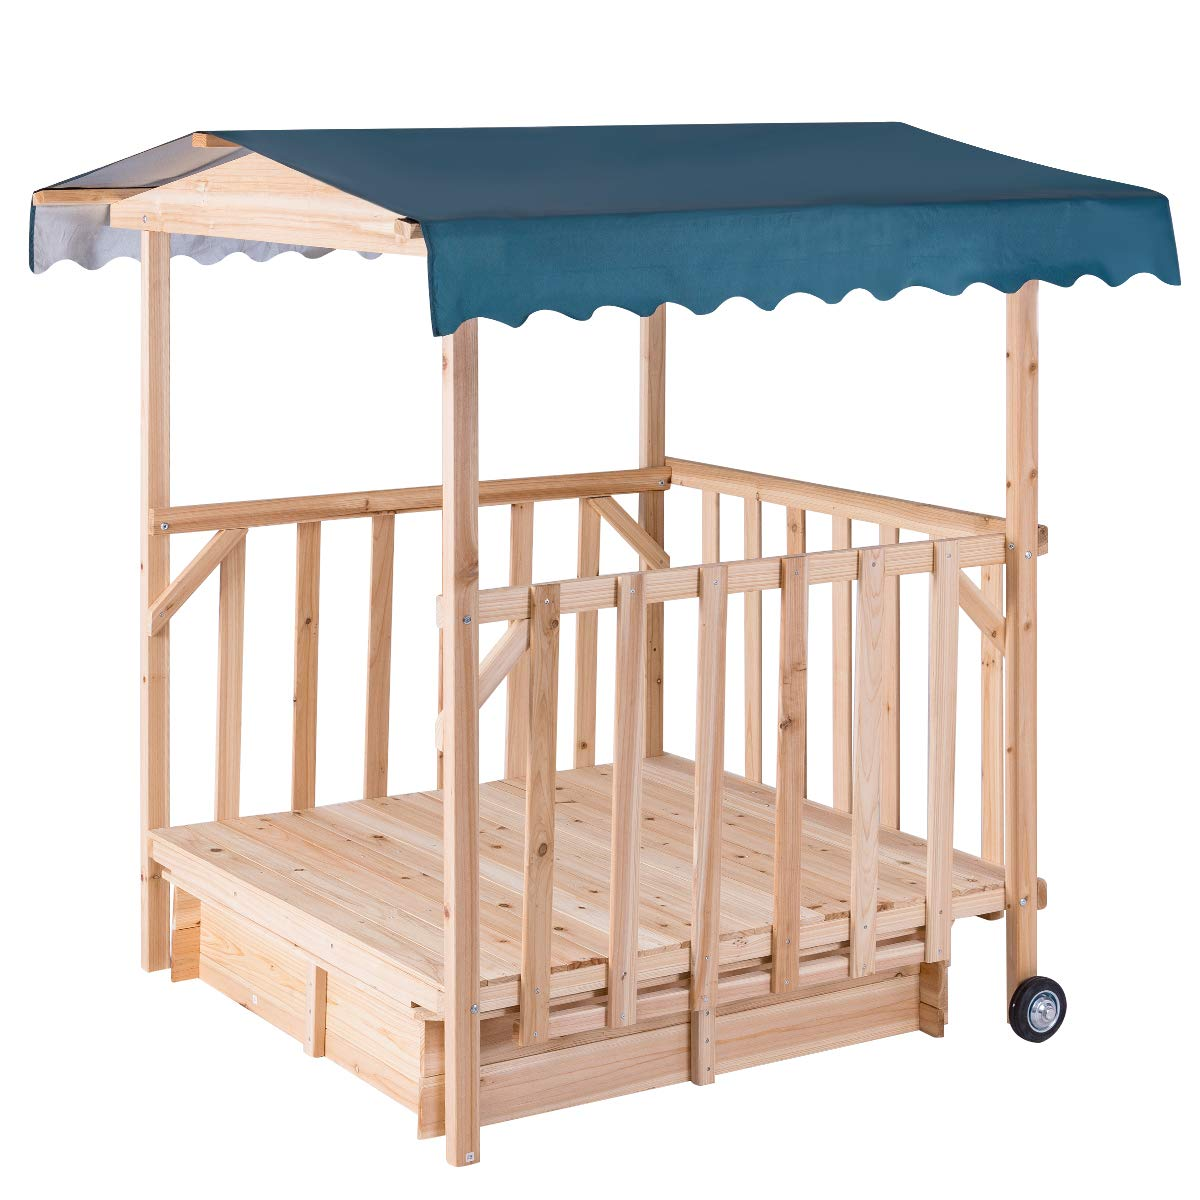 Home Two Wheels 45-Inch, Red Lawn Children Outdoor Beach Cabana Sandbox for Outdoor Non-Woven Fabric Cloth Courtyard Wood Frame Play Area Costzon Kids Retractable Playhouse w// Sandbox Canopy